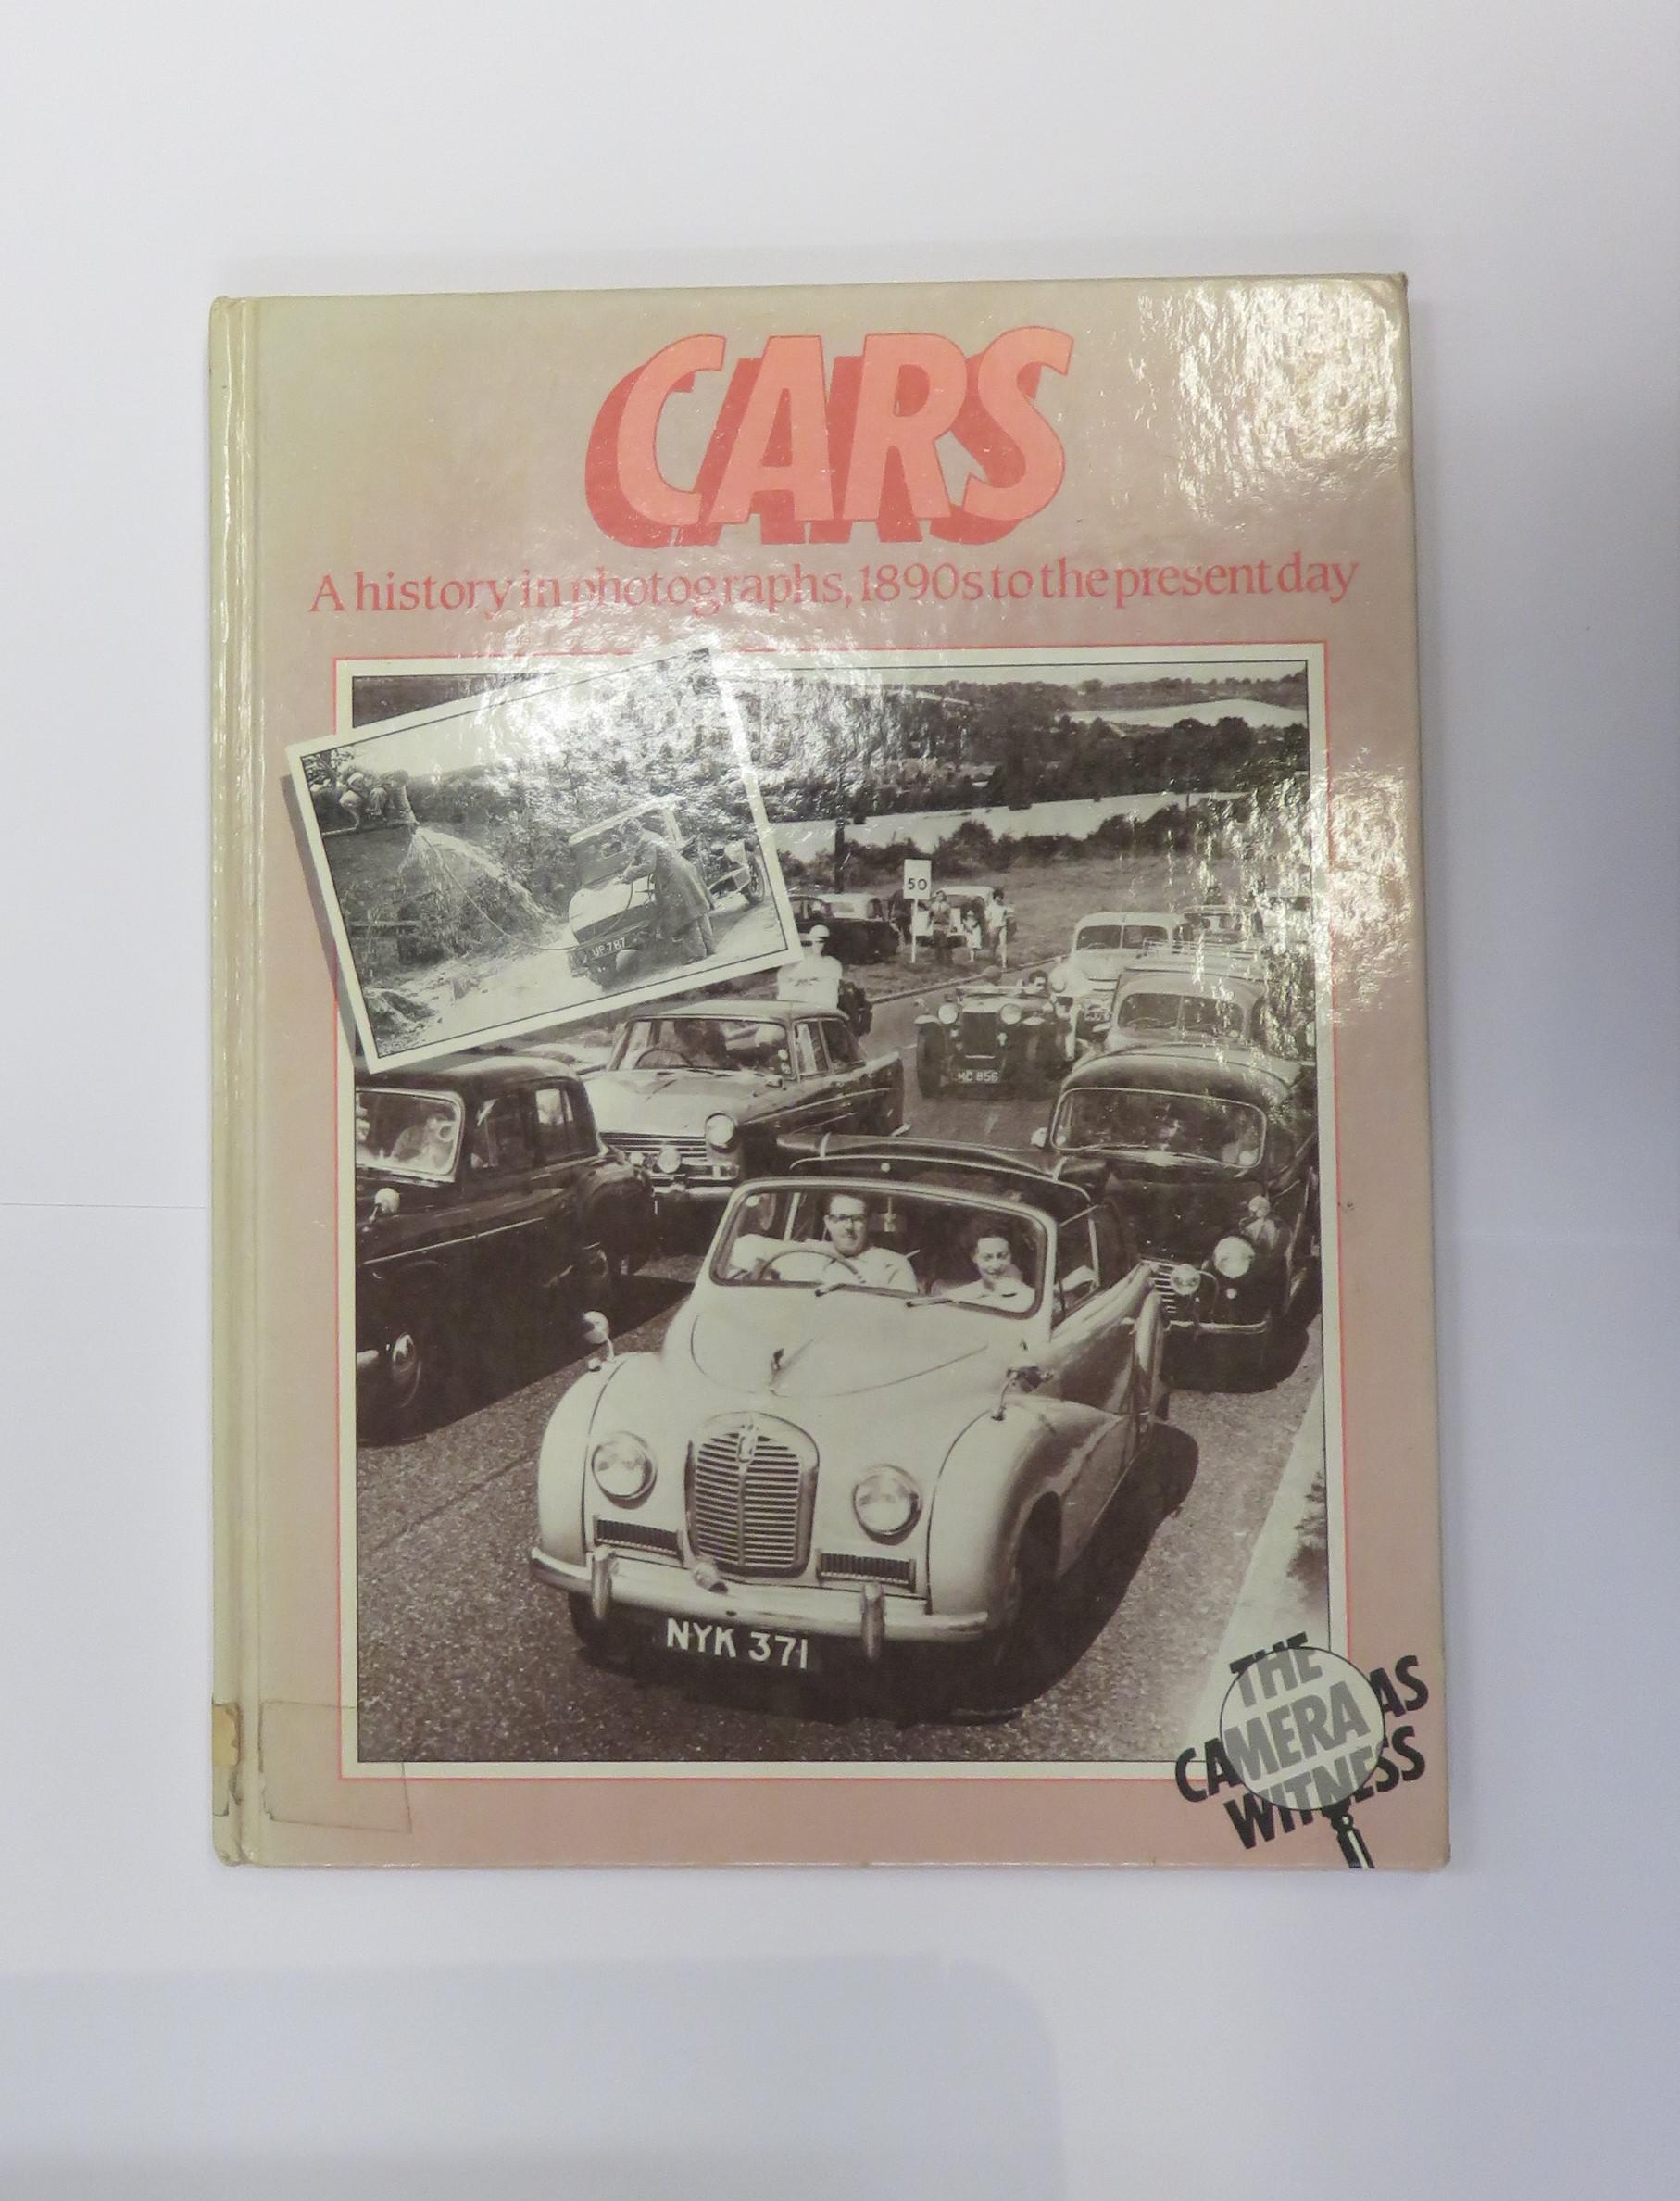 Cars: A History in Photographs, 1890s to the Present Day